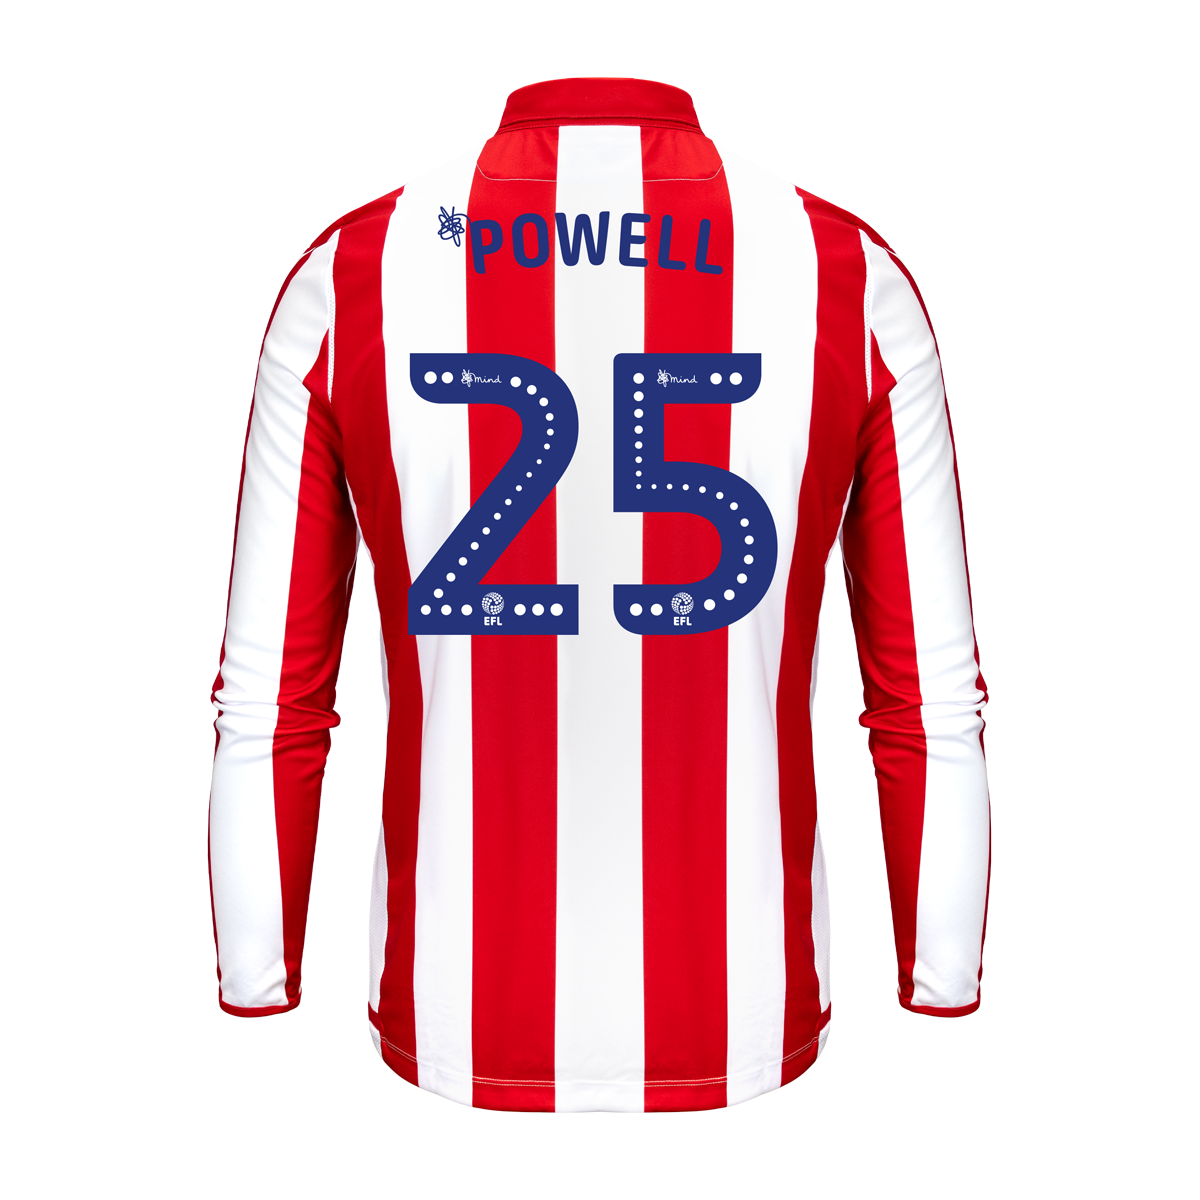 2019/20 Adult Home LS Shirt - Powell